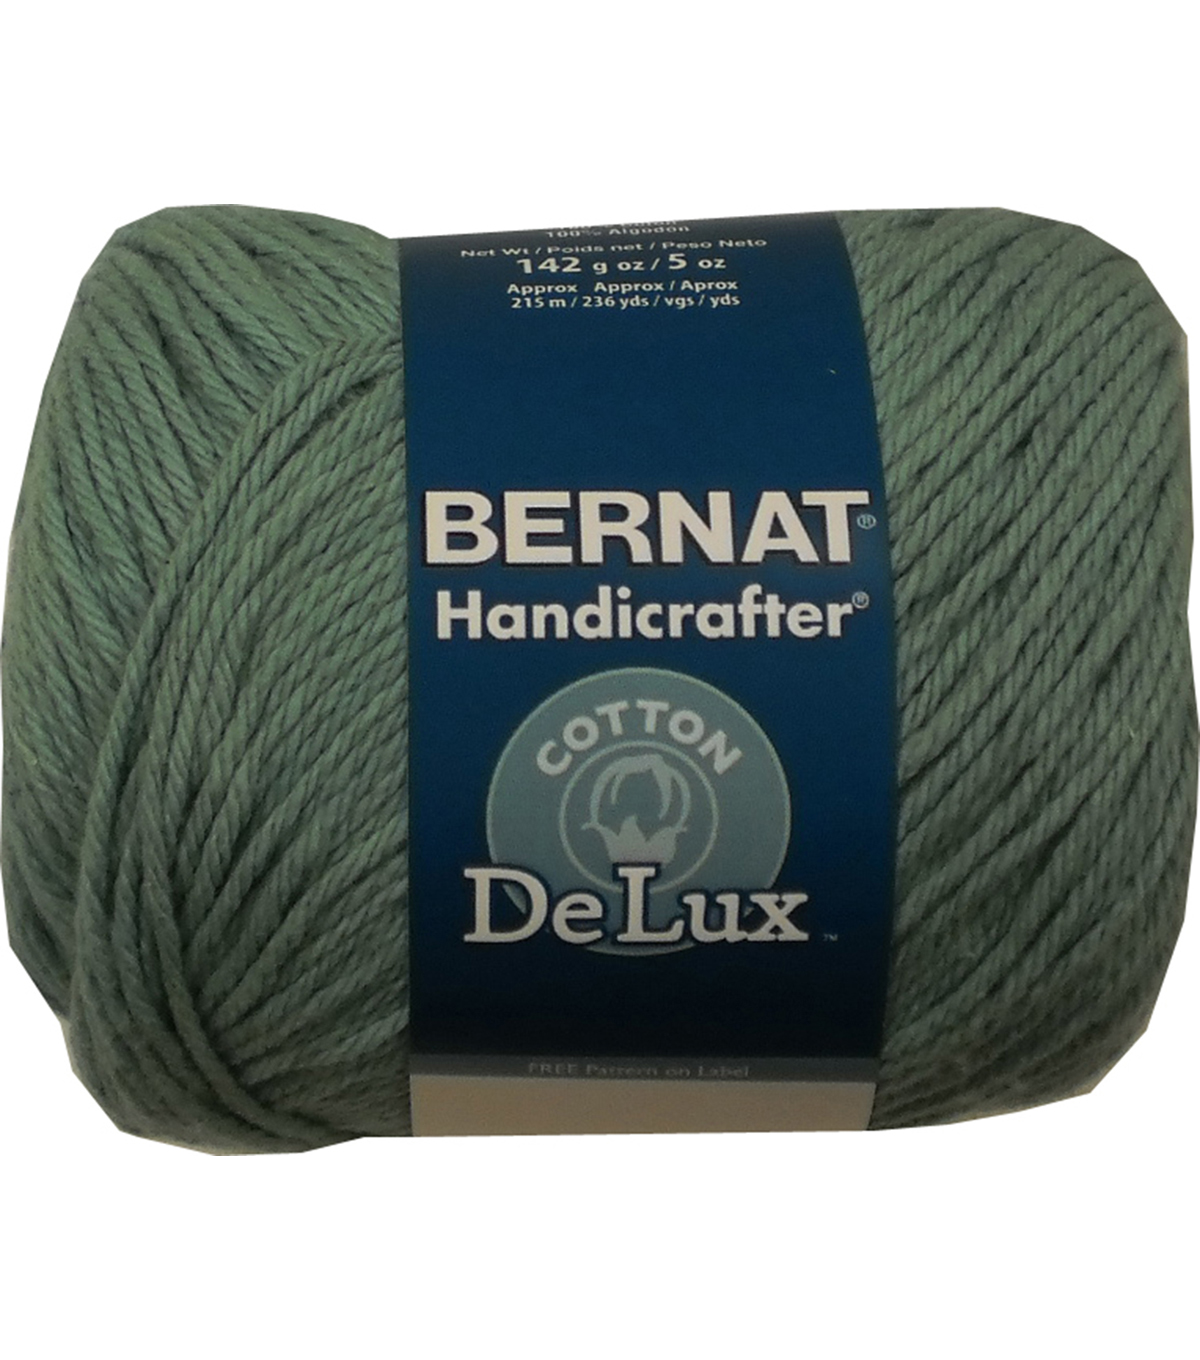 Bernat Handicrafter DeLux Cotton Yarn, Seaspray